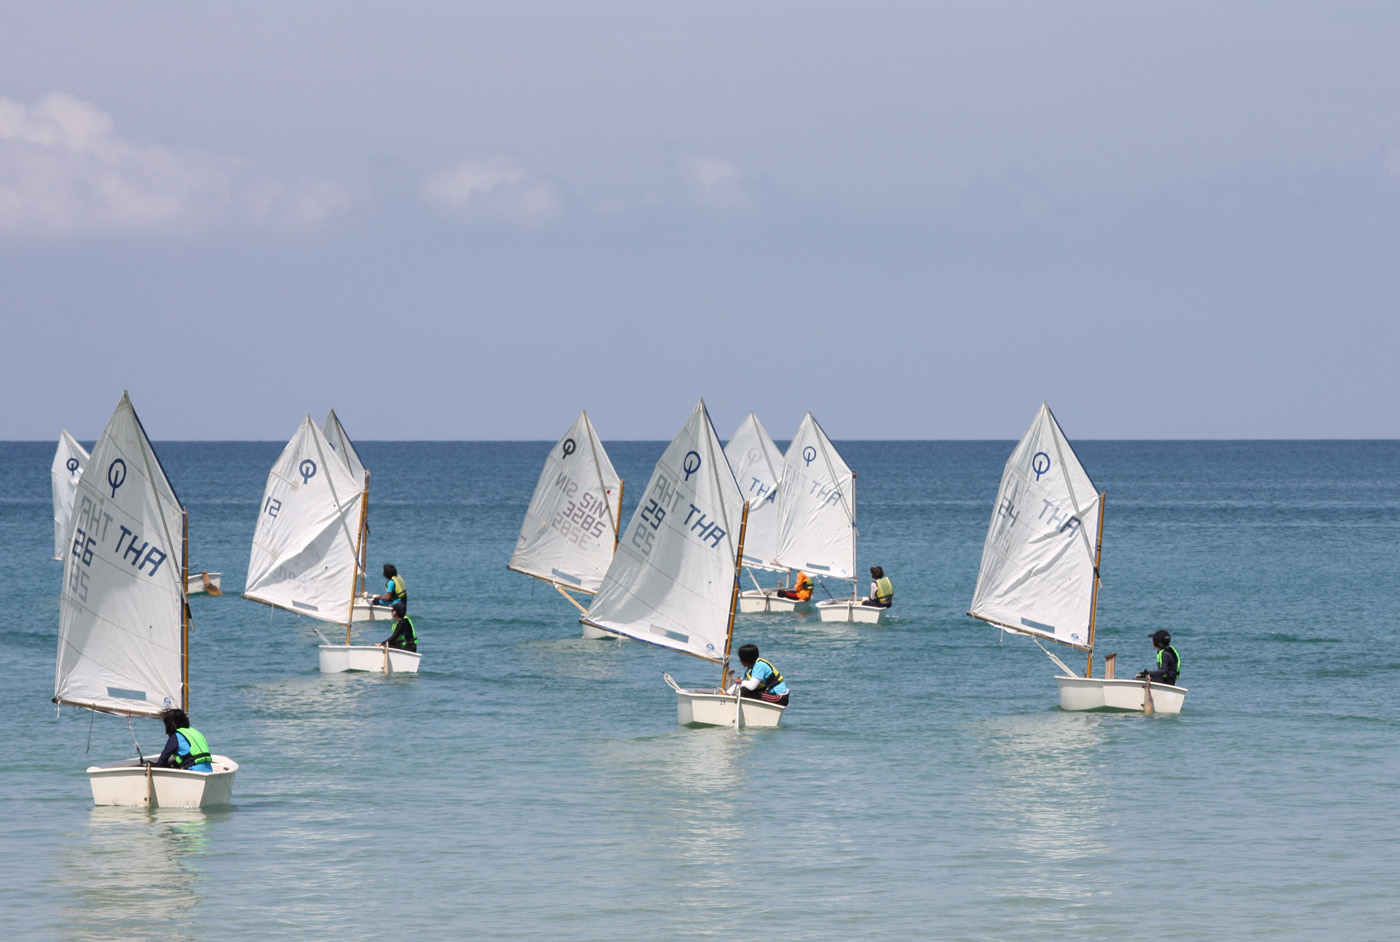 A 16-strong Optimist Class battled it out at Act II of the 2012 Phuket Dinghy Series held off Bang Tao Beach. Photo by MarineScene.asia.